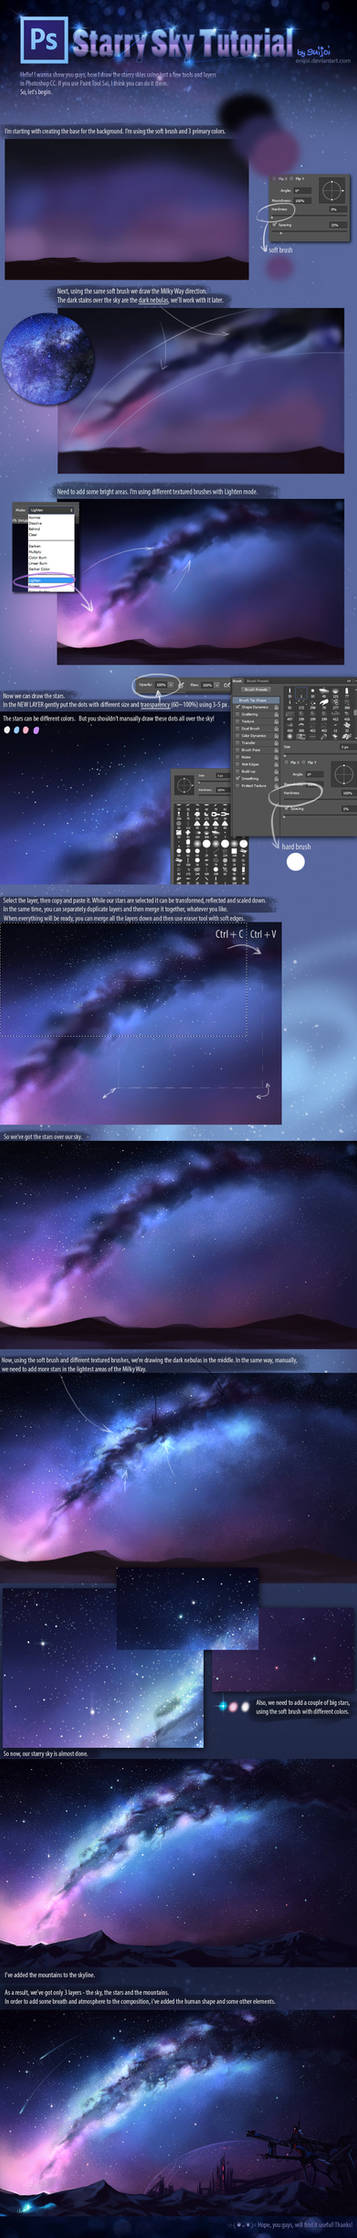 +Starry Sky Tutorial+